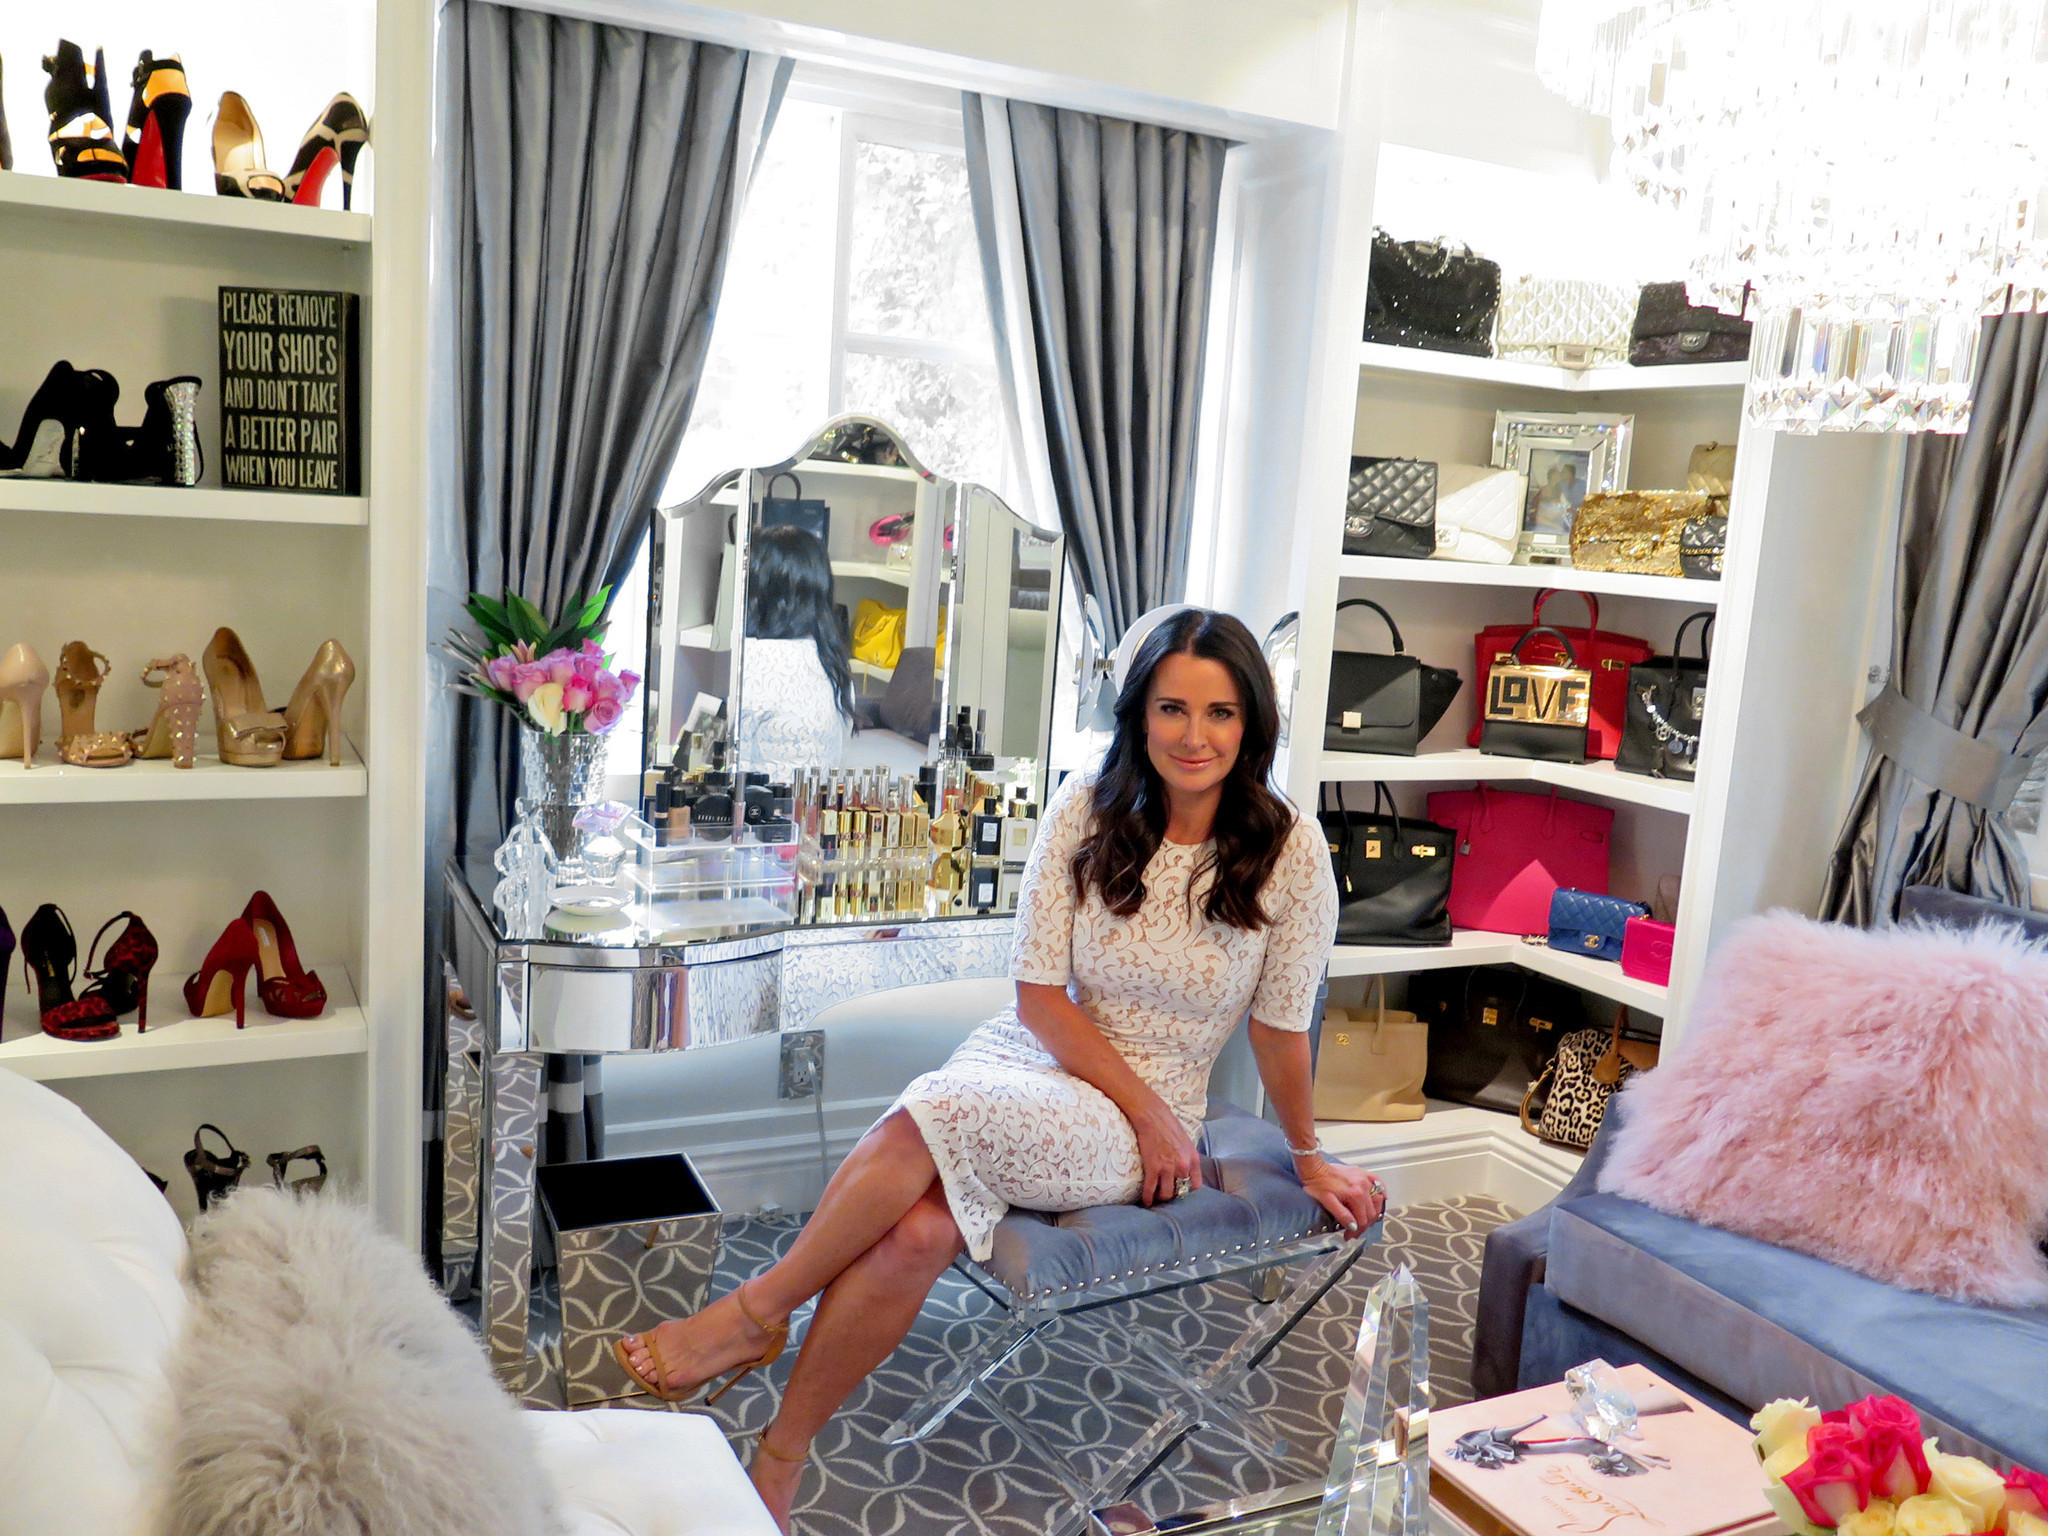 Kyle Richards converts home gym into dressing room - LA Times